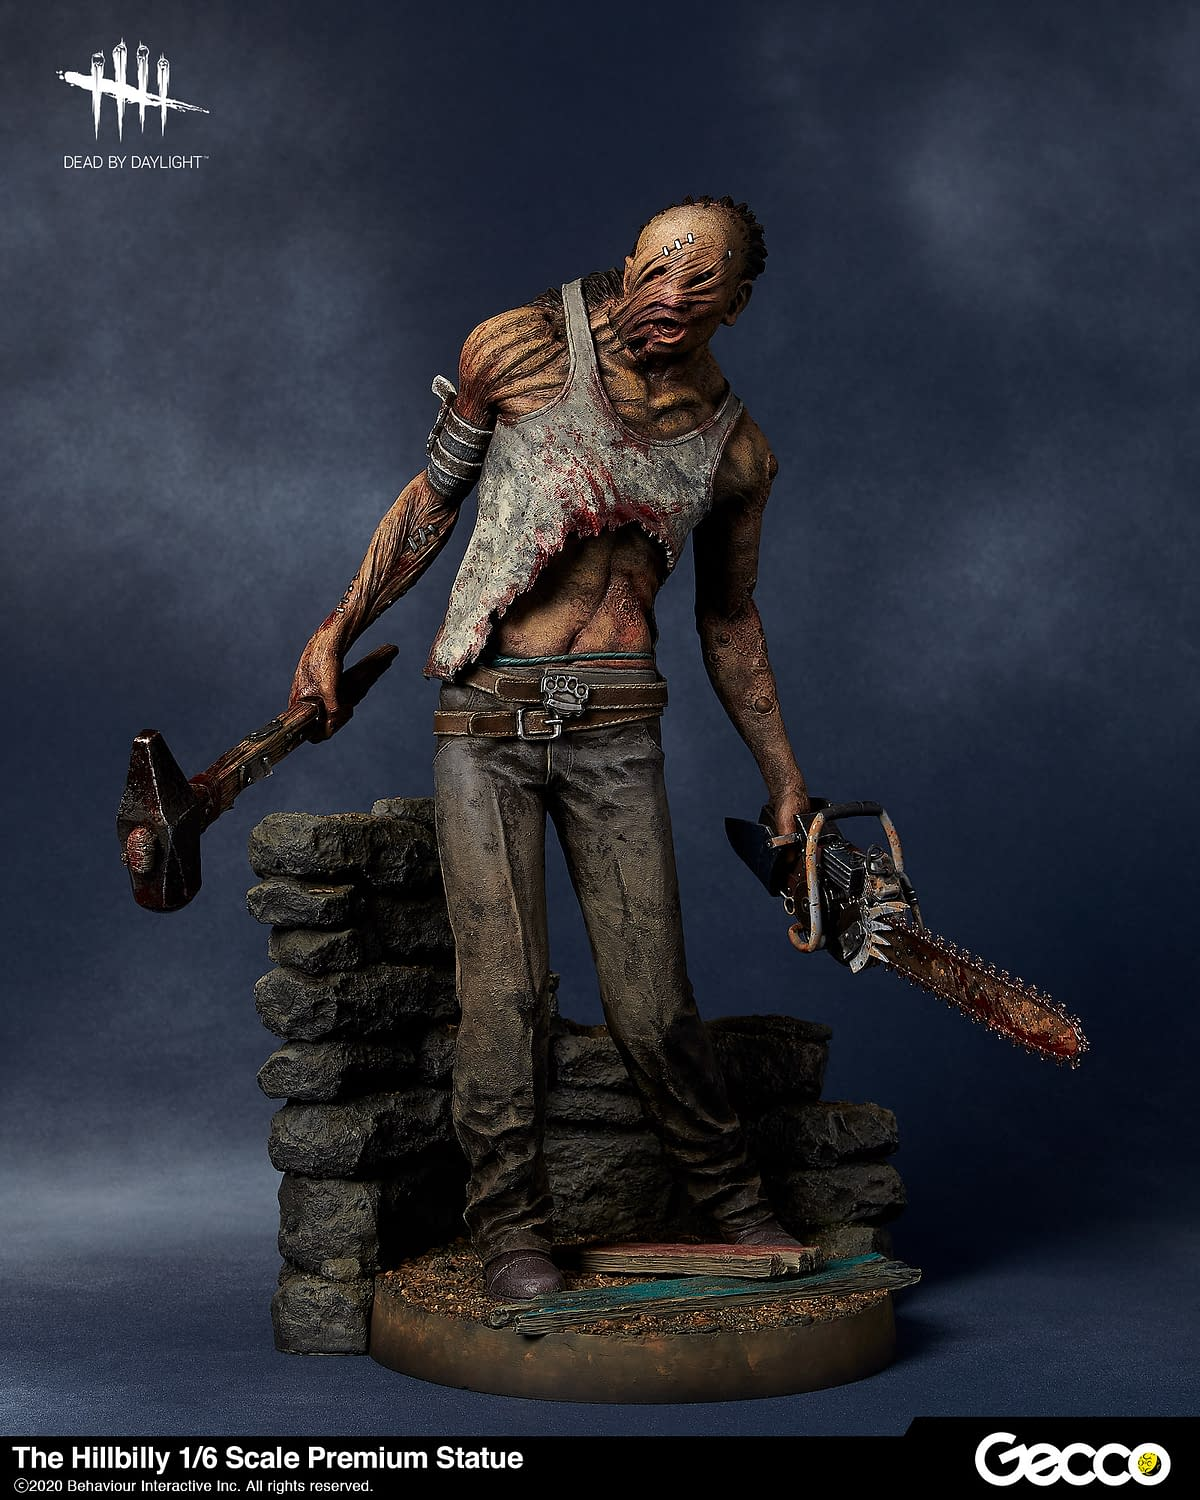 Gecco-Dead-by-Daylight-Hillbilly-Statue-002